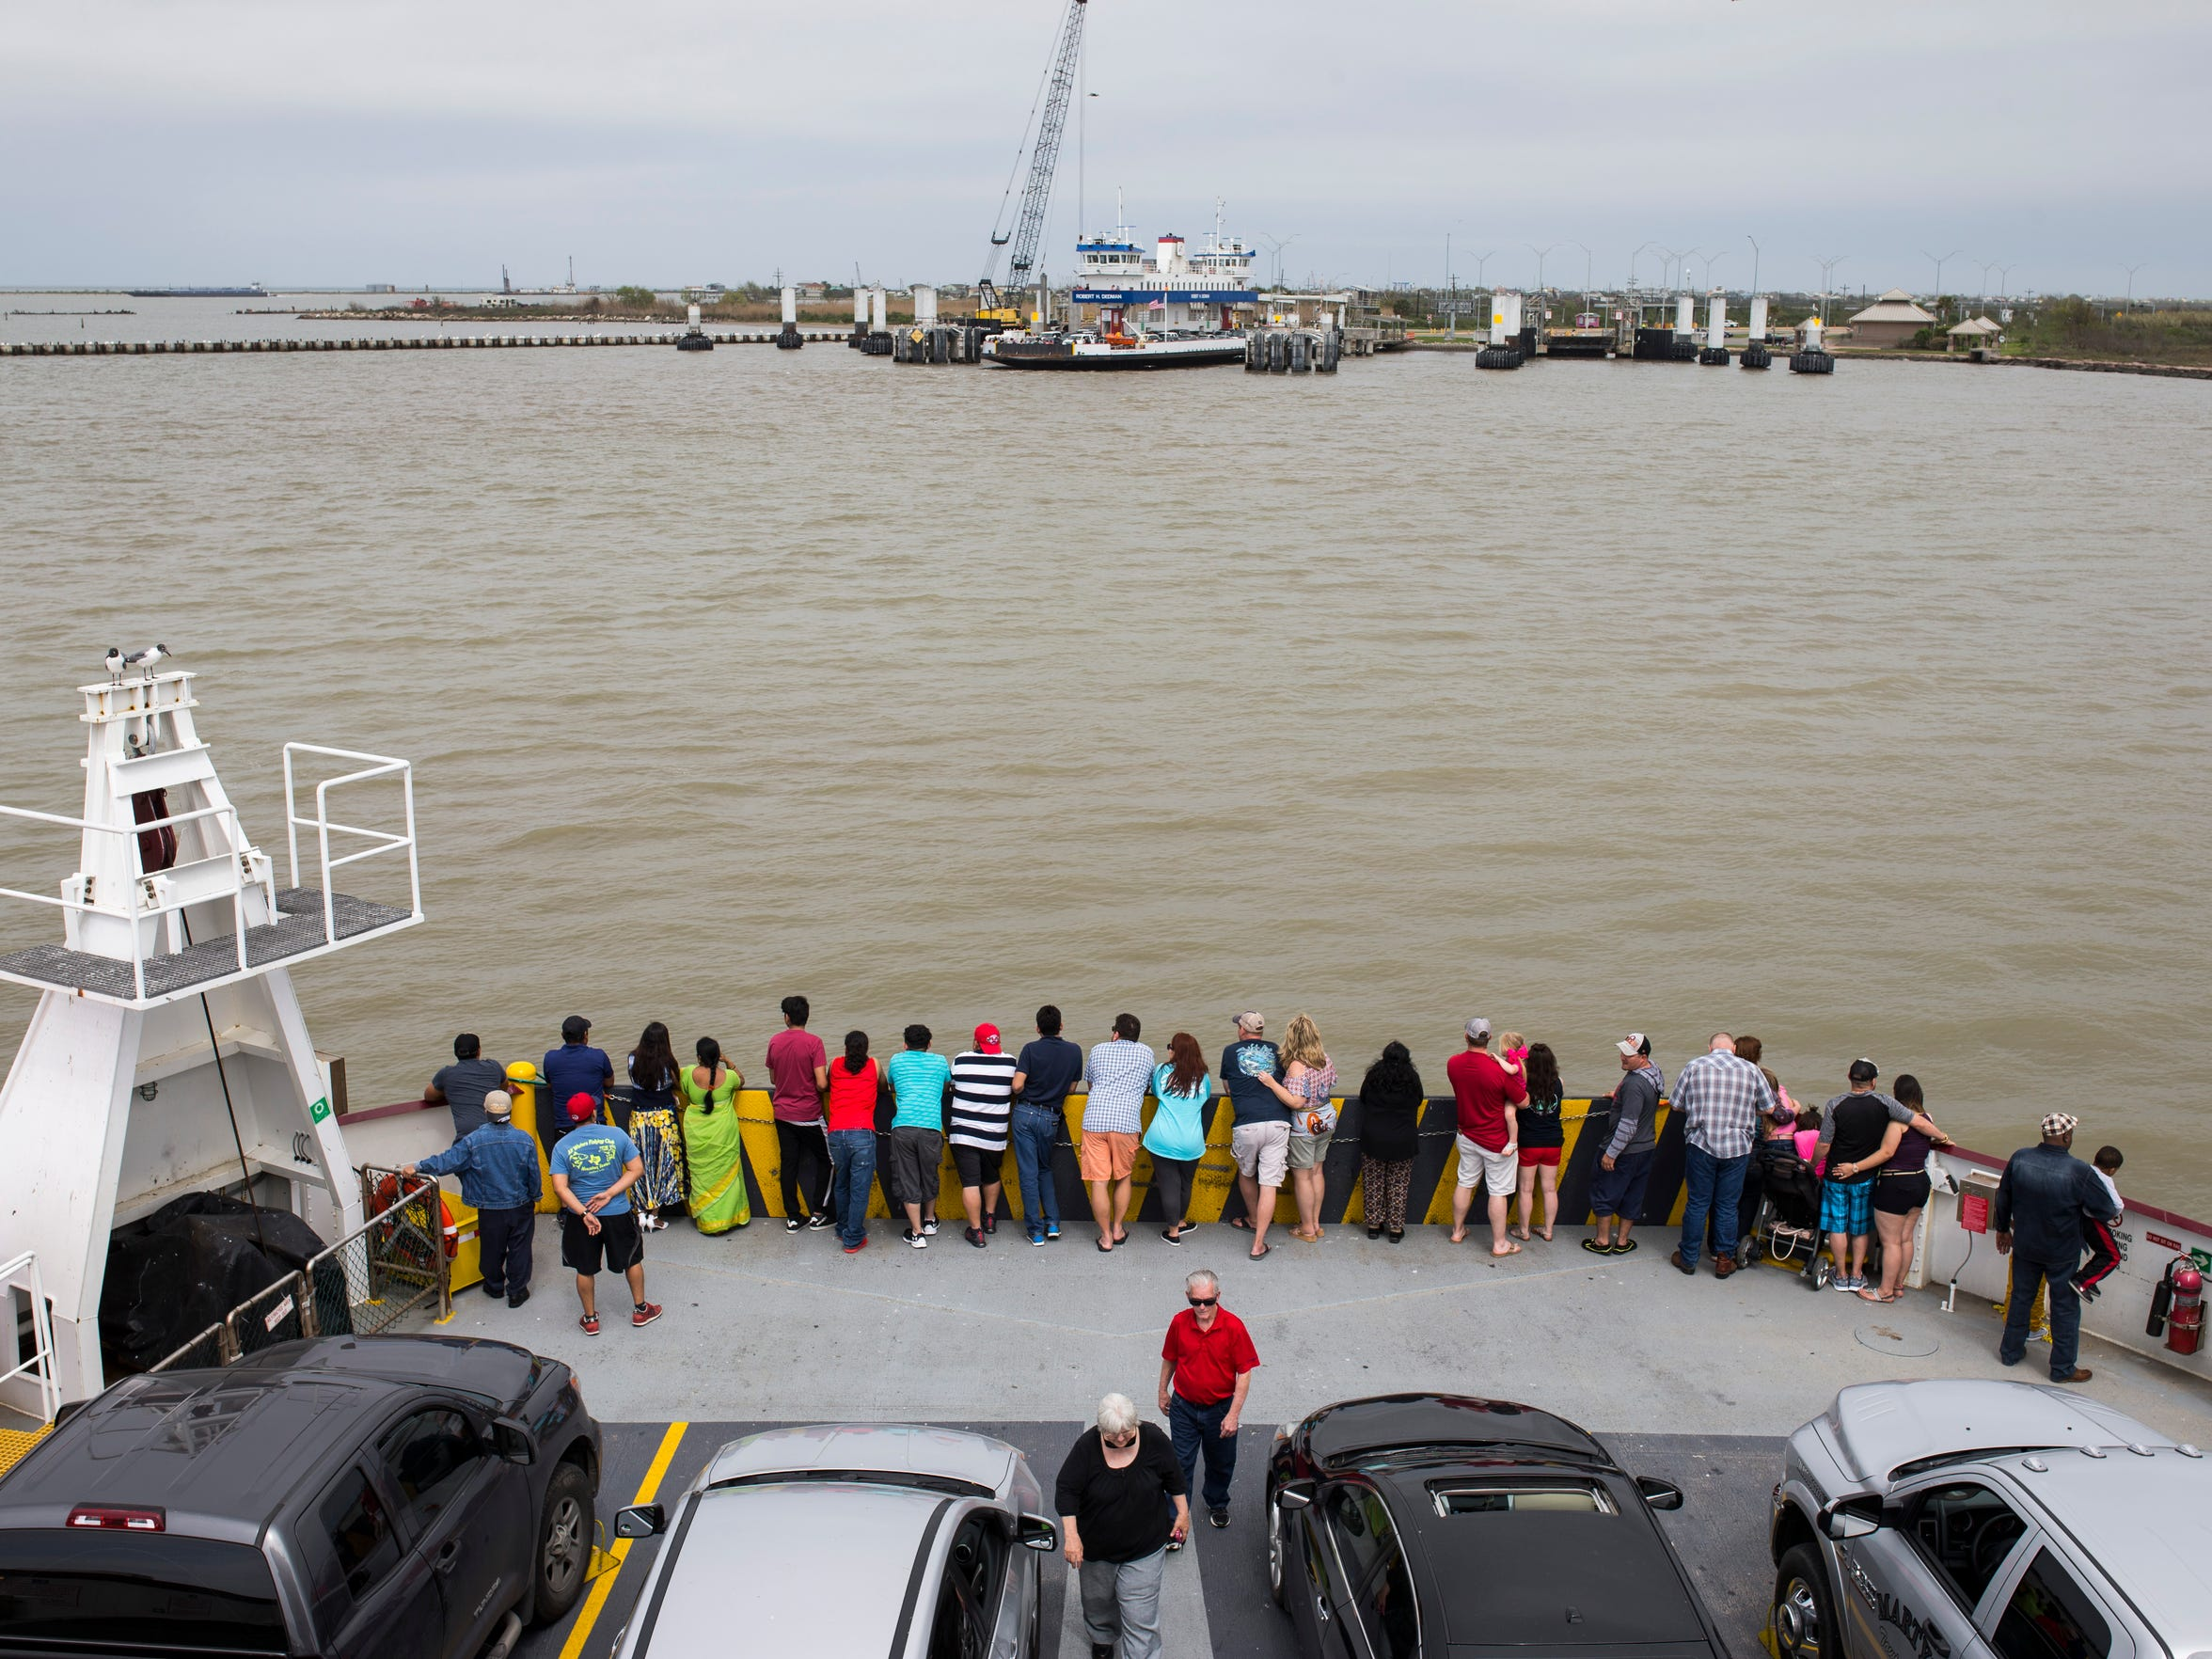 People watch as their ferry approaches Bolivar Peninsula